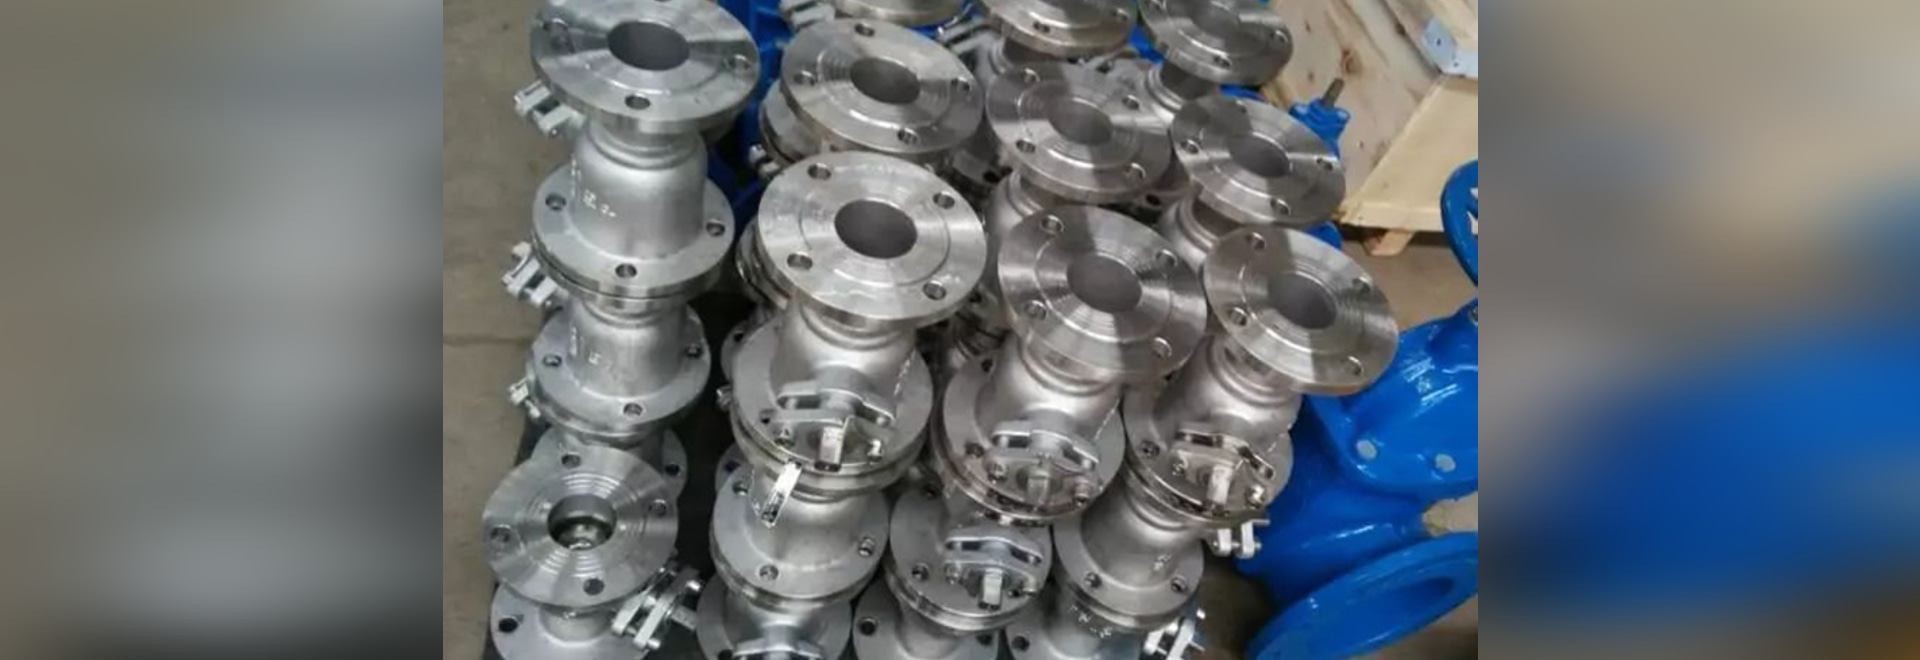 Alsontech 3D Vision System Applied in the Valve Industry